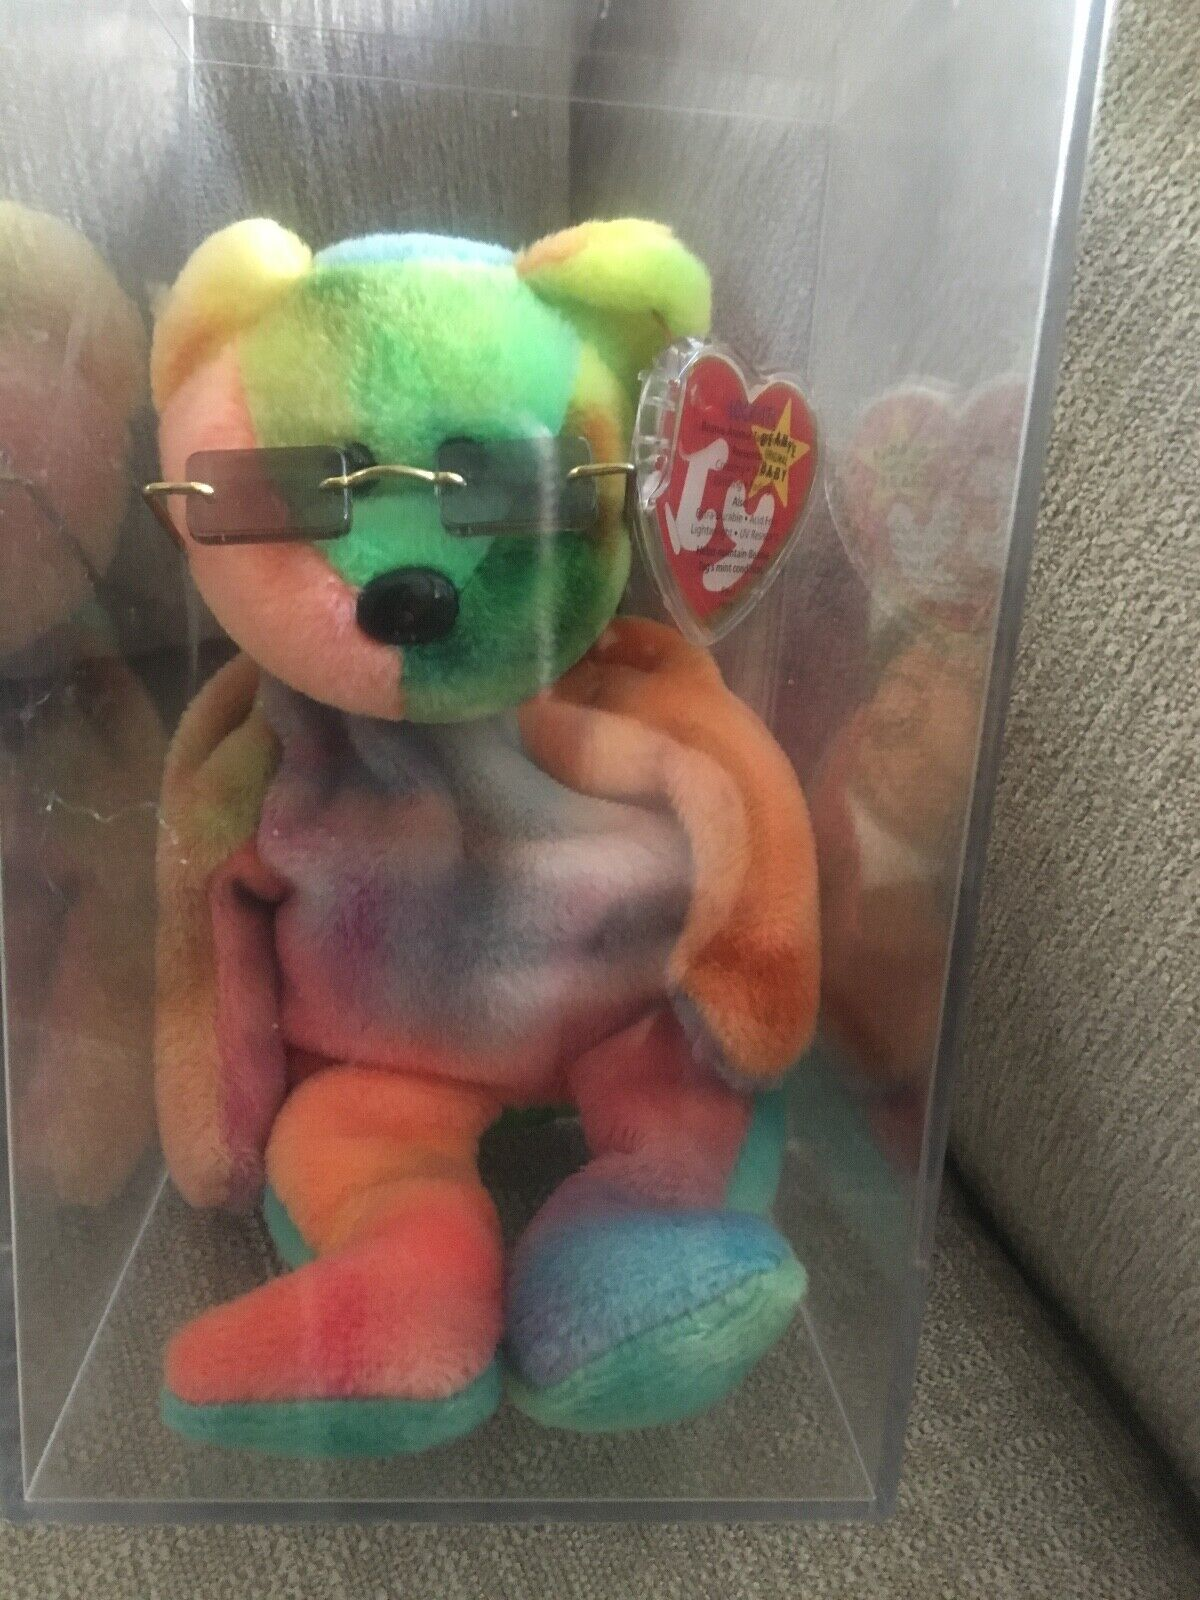 RARE RARE RARE 1993 Garcia Retired Ty Beanie Baby. In container, with his glasses. fba4d4